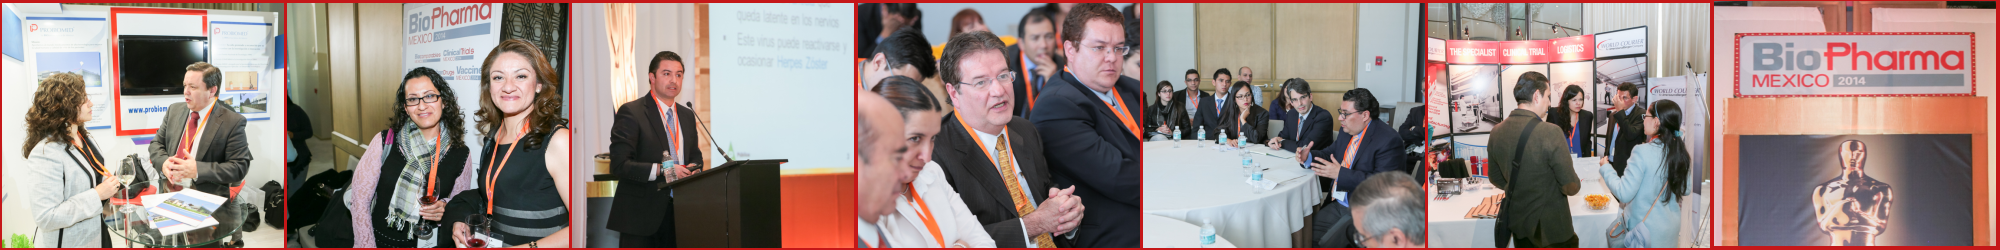 Photos from BioPharma Mexico 2014